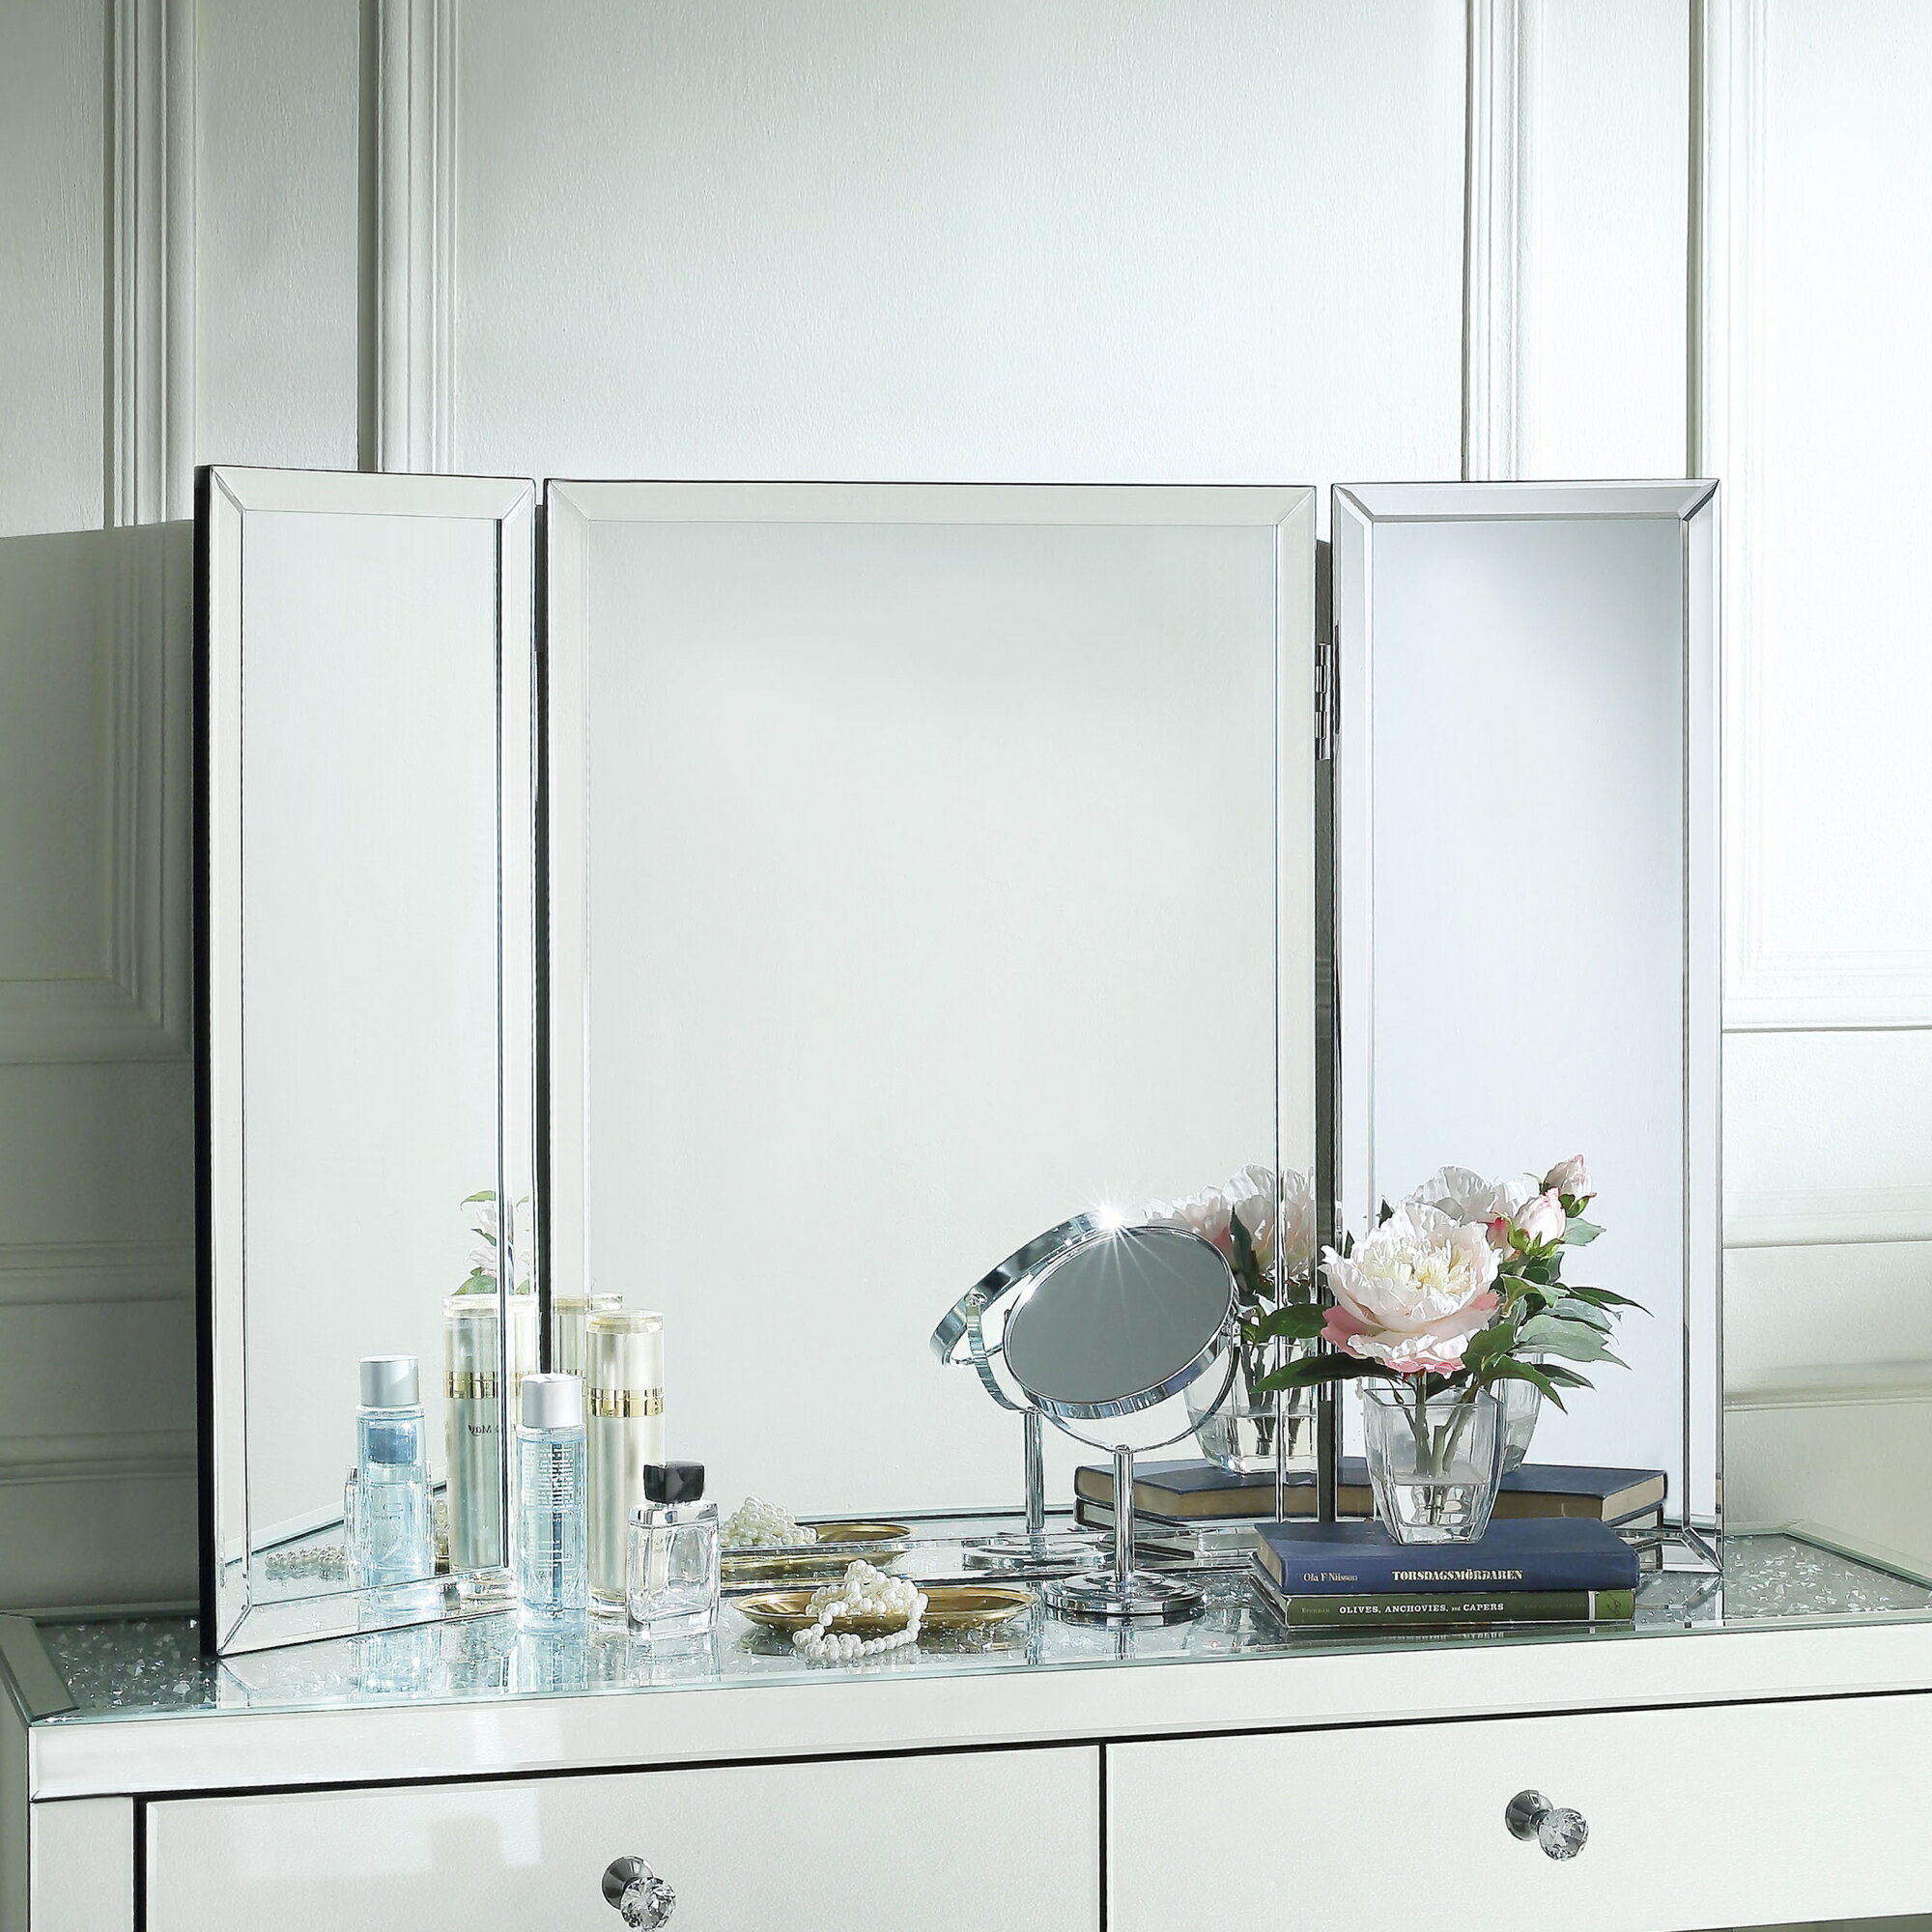 Vanity Mirror.Wallace Tabletop Vanity Mirror Tri Fold Mirrored Frame Free Standing Or Wall Mounted Small Or Large